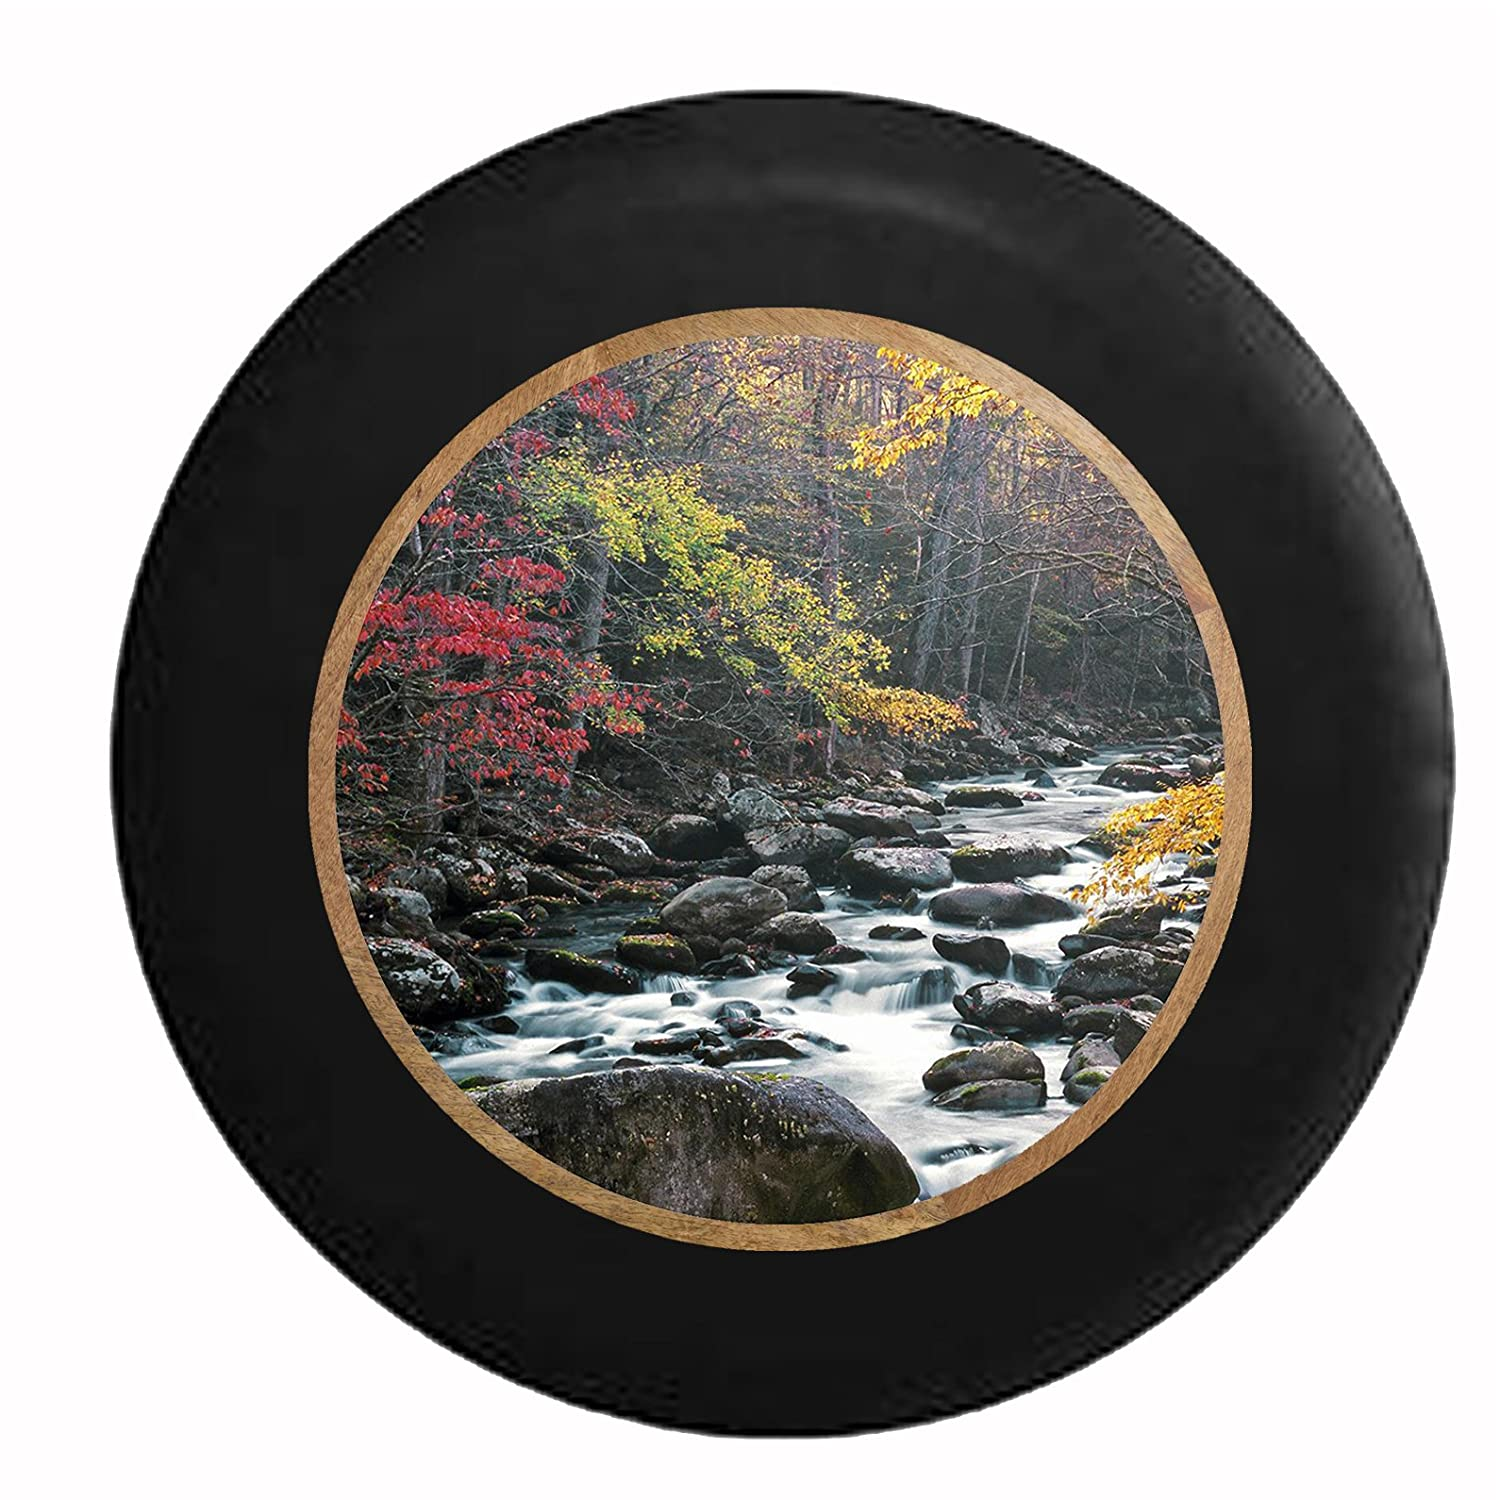 Full Color Tennessee River Stream Through the Trees from Rocky Mountains Jeep RV Camper Spare Tire Cover Black 33 in Pike Outdoors